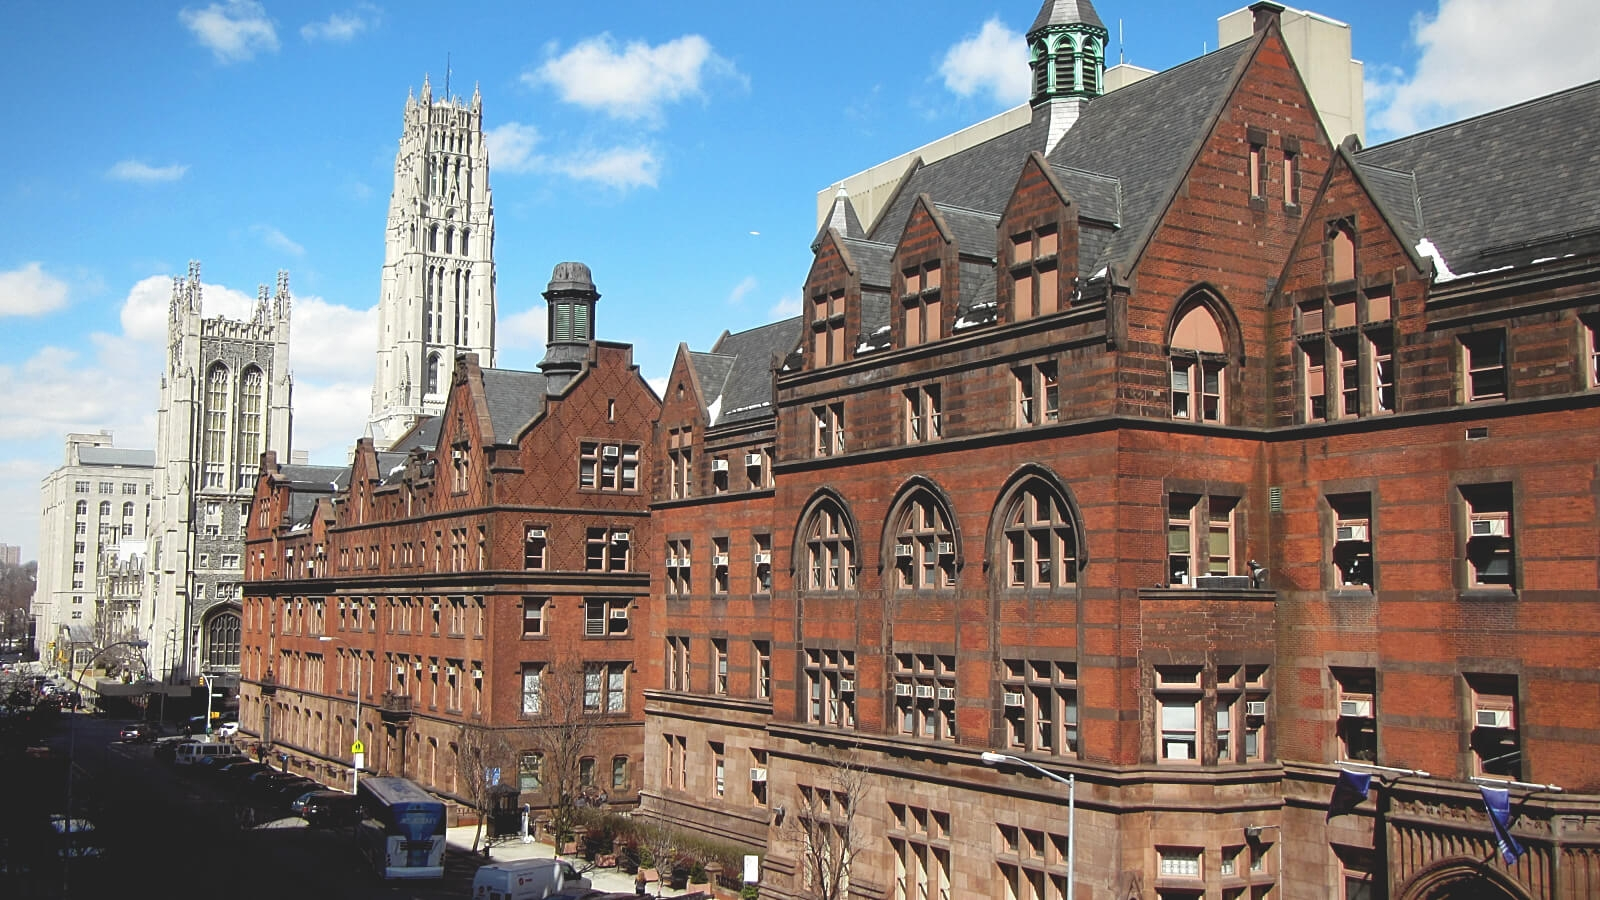 Teachers College at Columbia University